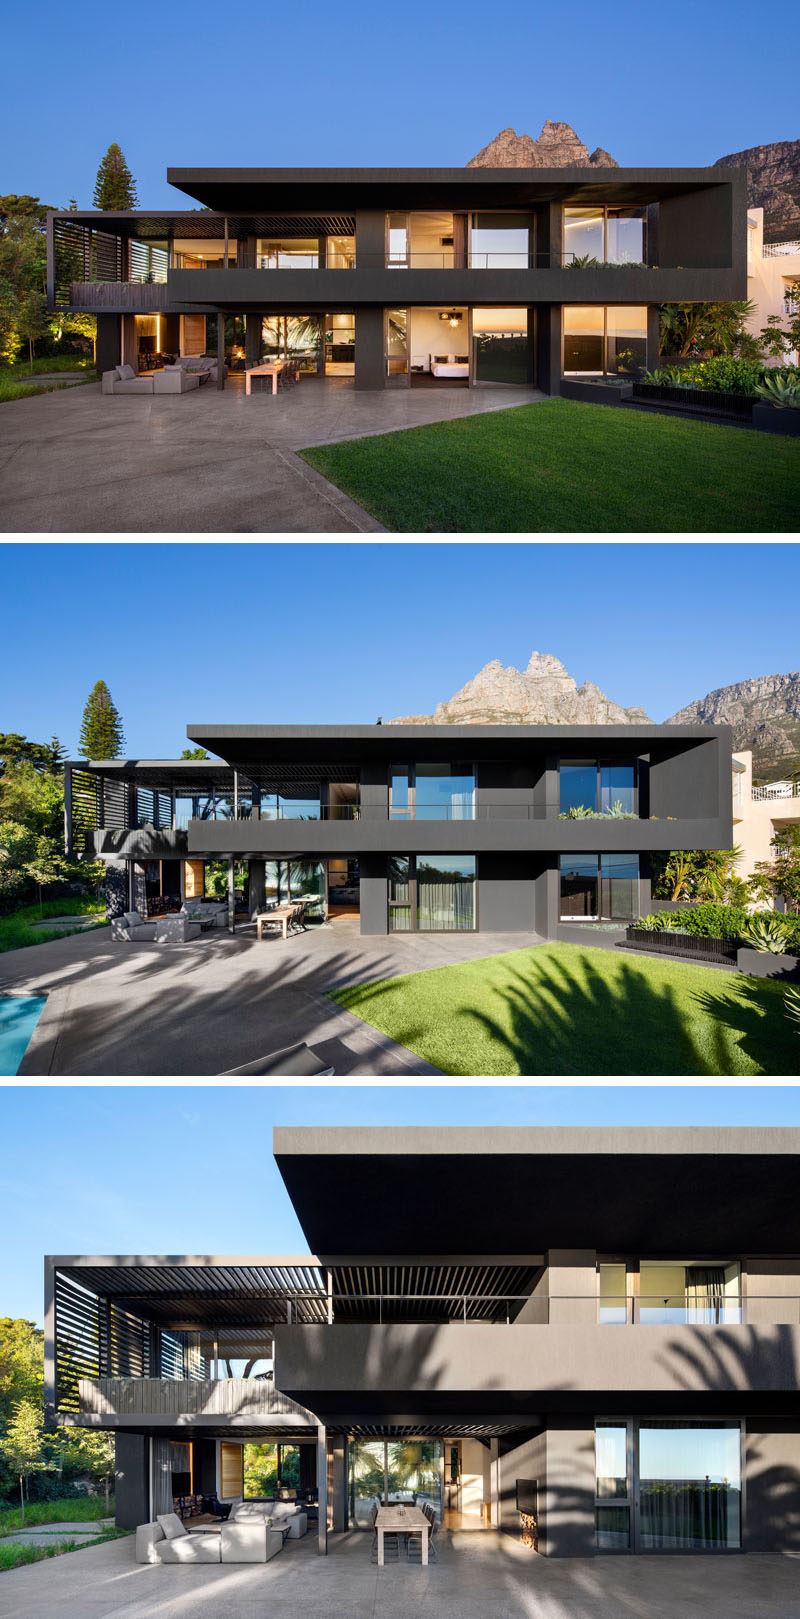 The rear of this modern house is filled with large windows and sliding doors on the lower level open the interior to a large patio with an outdoor lounge and dining area, and the backyard that has a swimming pool. #Windows #Backyard #ModernHouse #BlackHouse